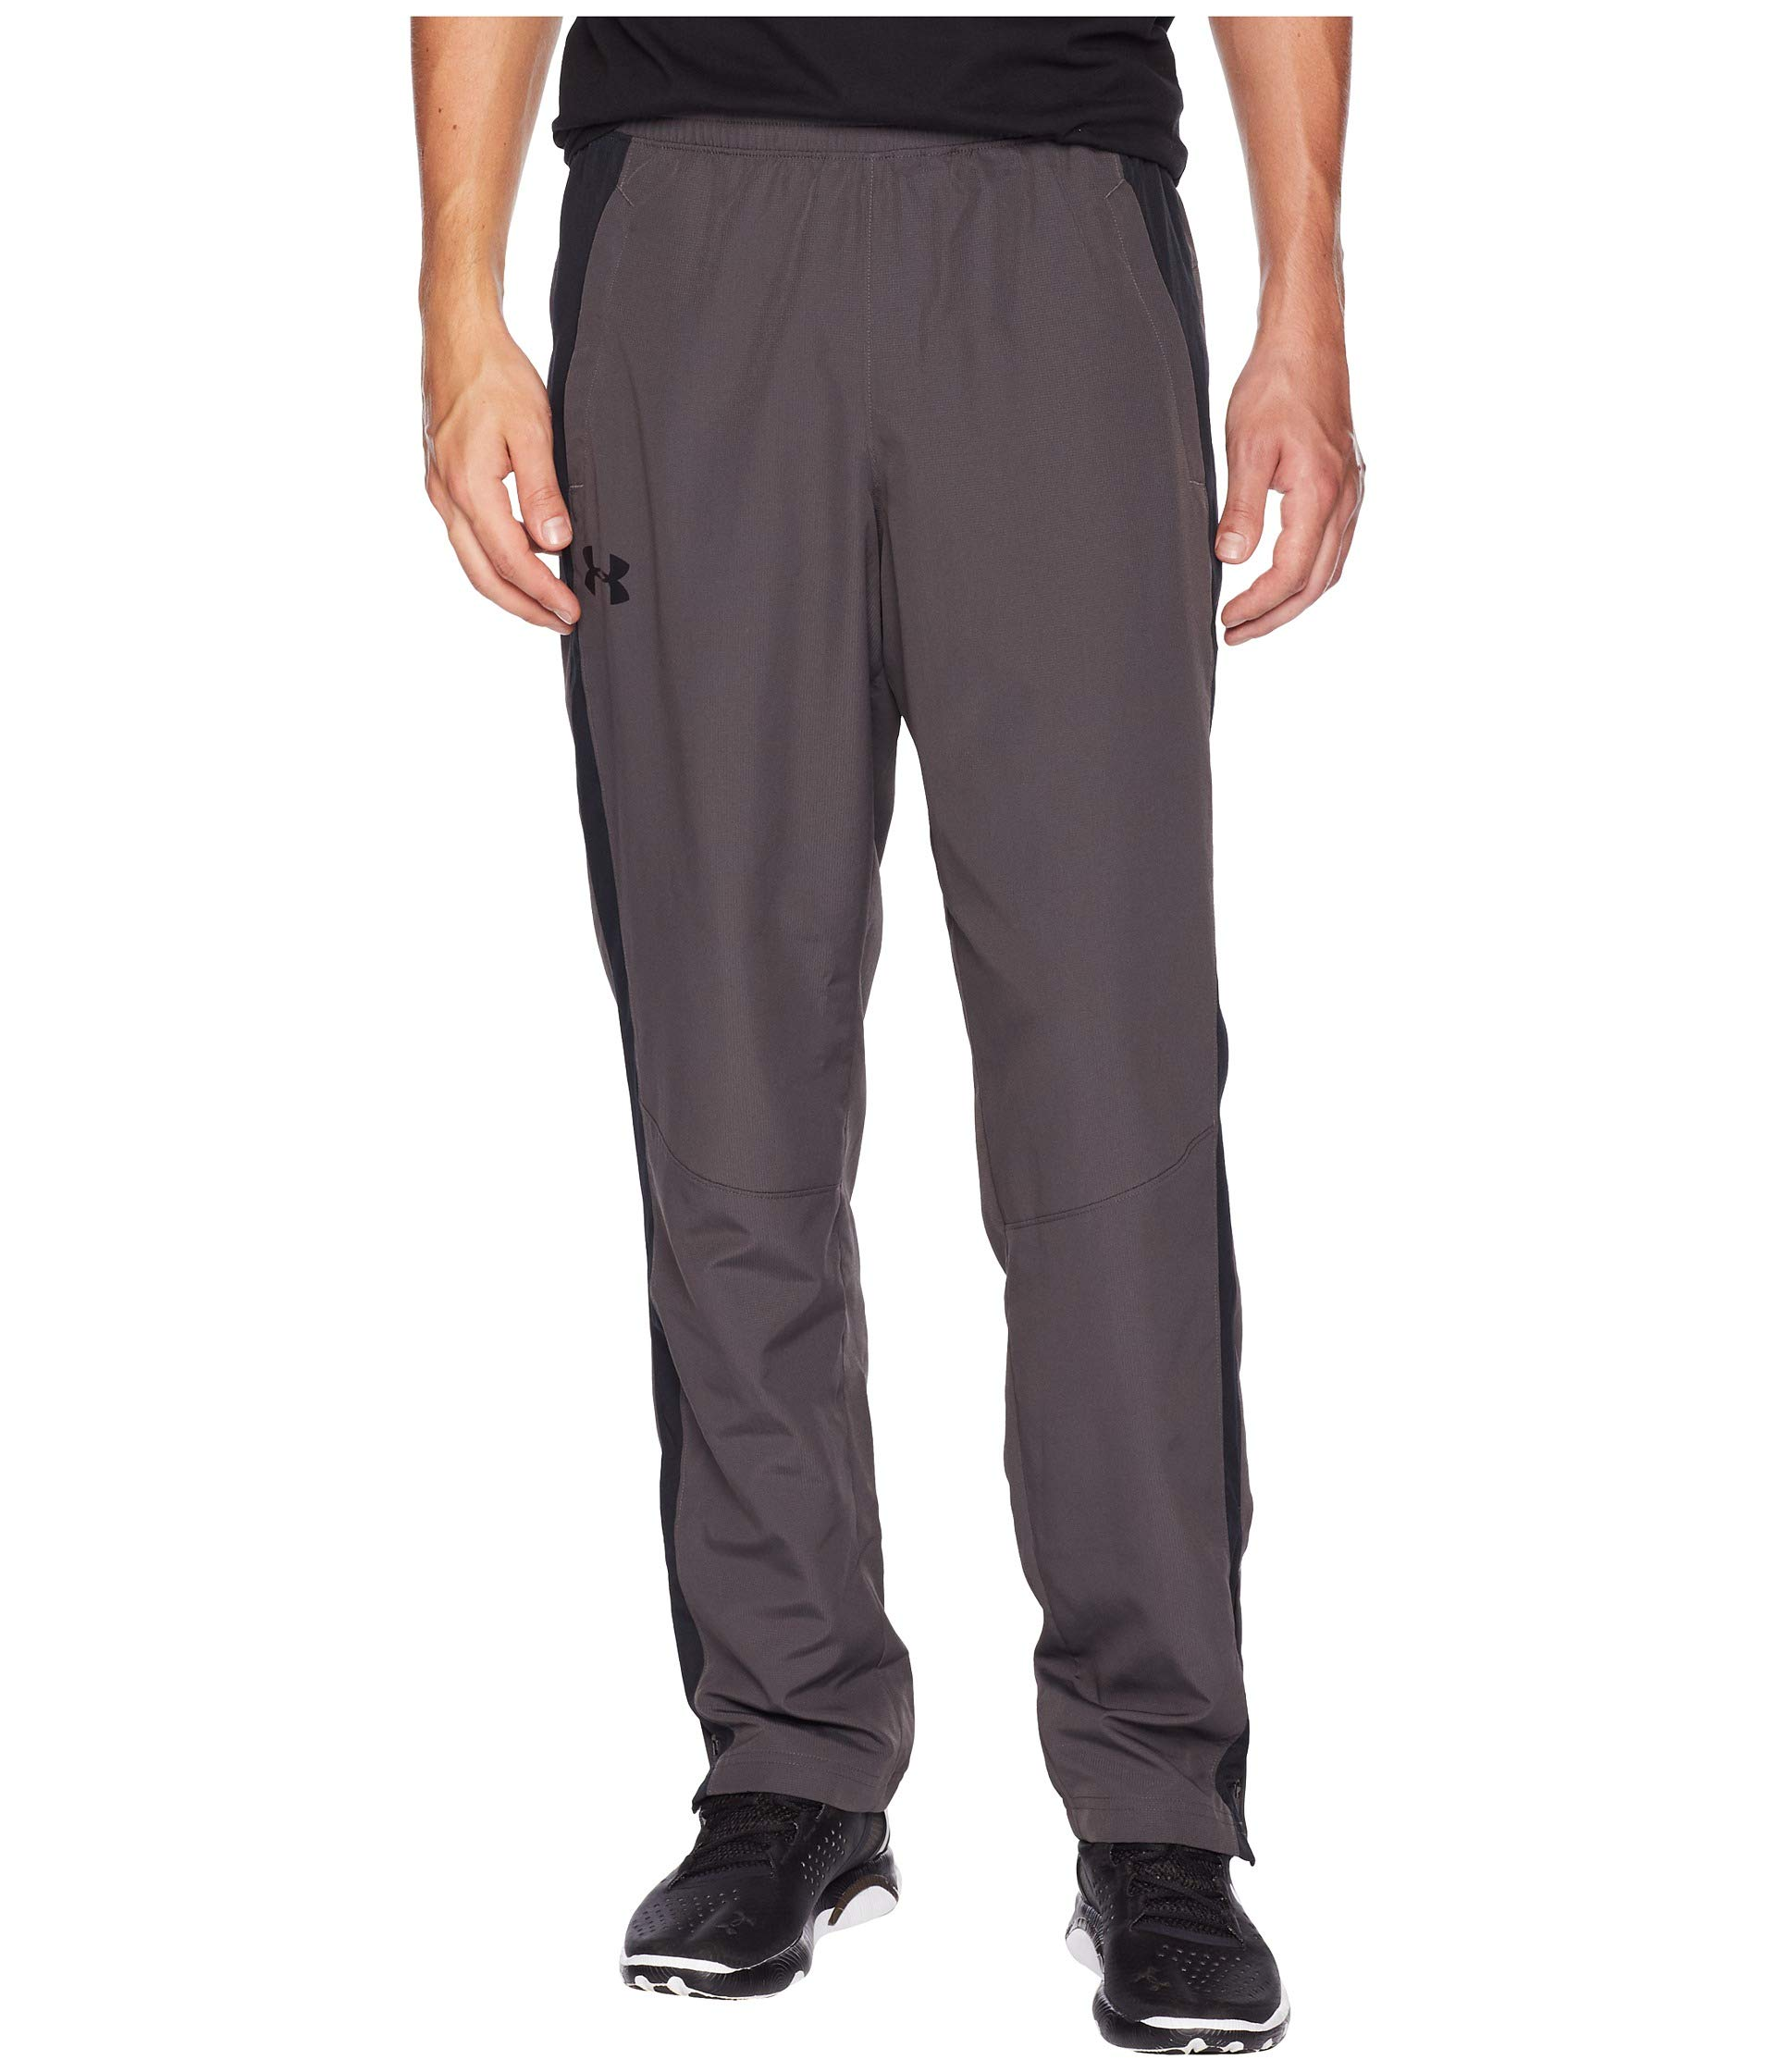 charcoal Woven Armour Under Pants Charcoal Sportstyle charcoal qwWXxnOTfP